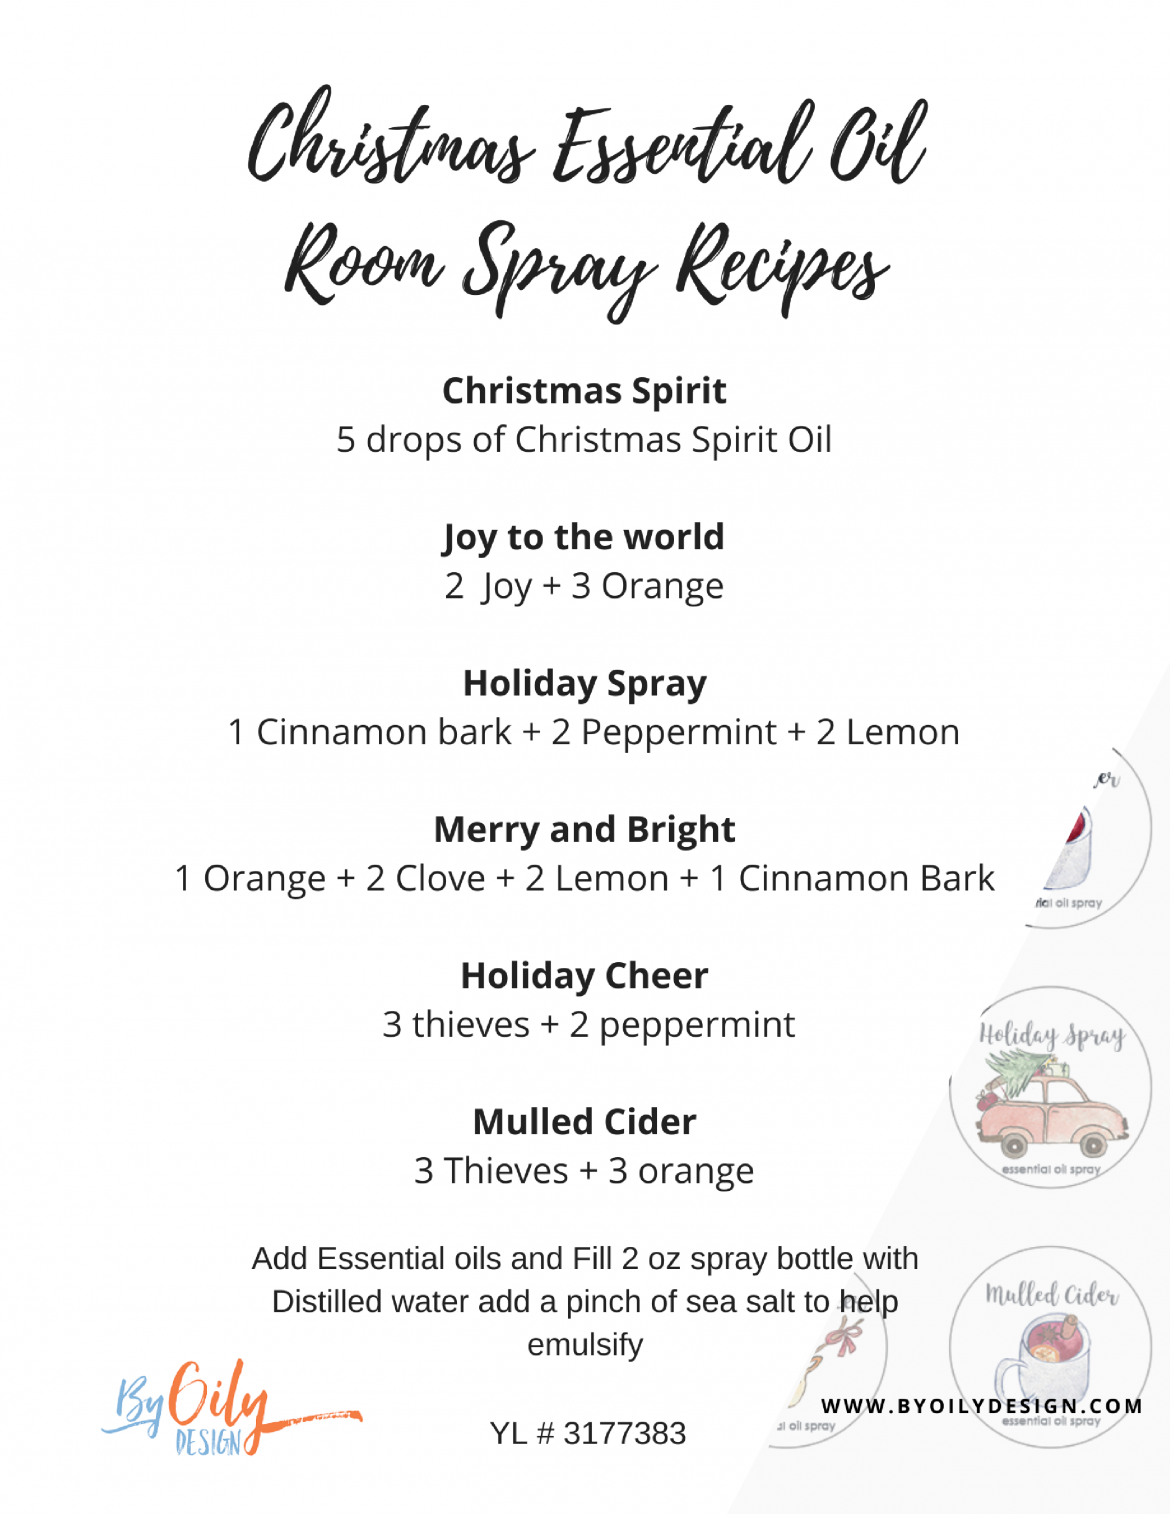 6 Simple DIY Christmas gift room sprays that will be a hit ...